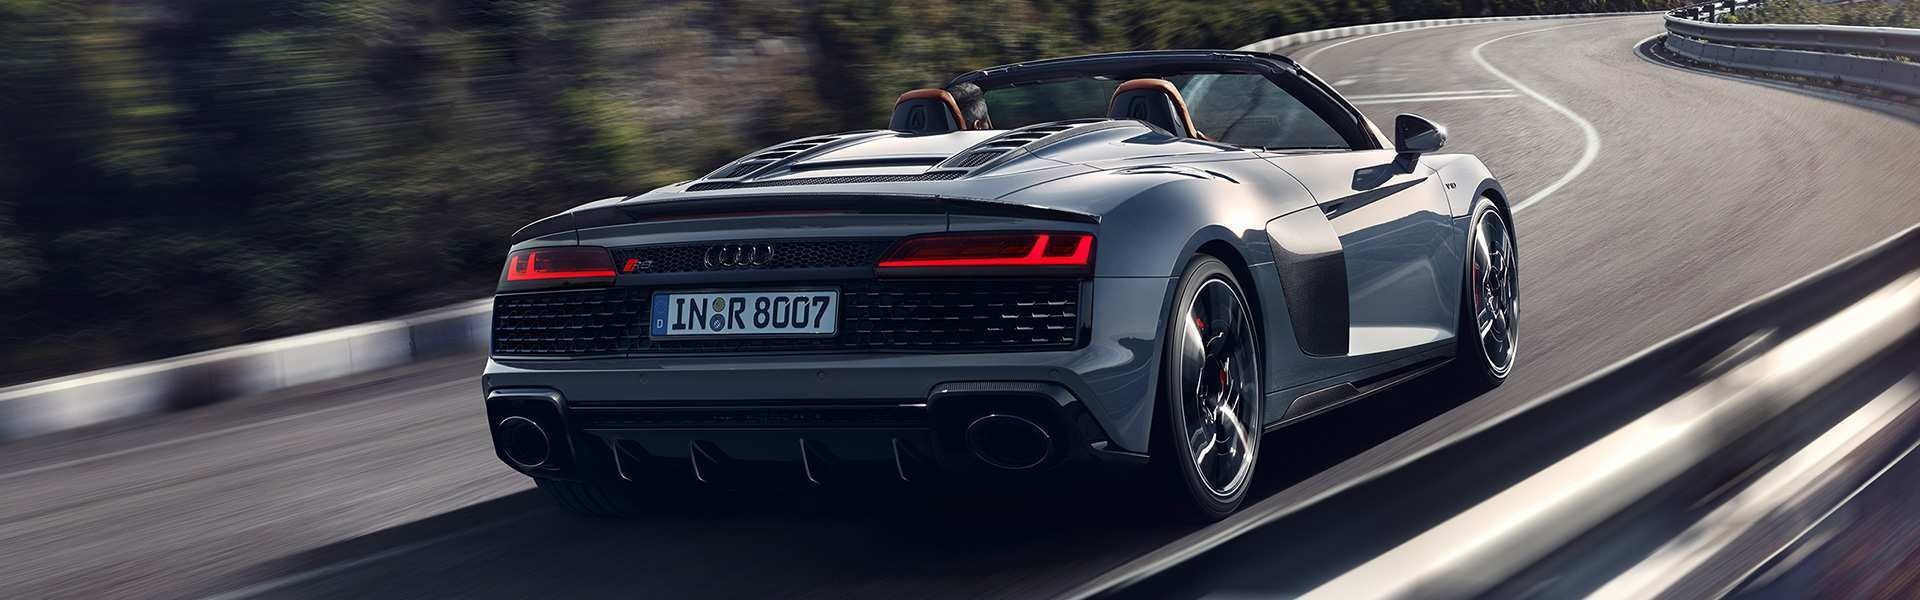 41 The Best 2019 Audi R8 V10 Spyder Rumors